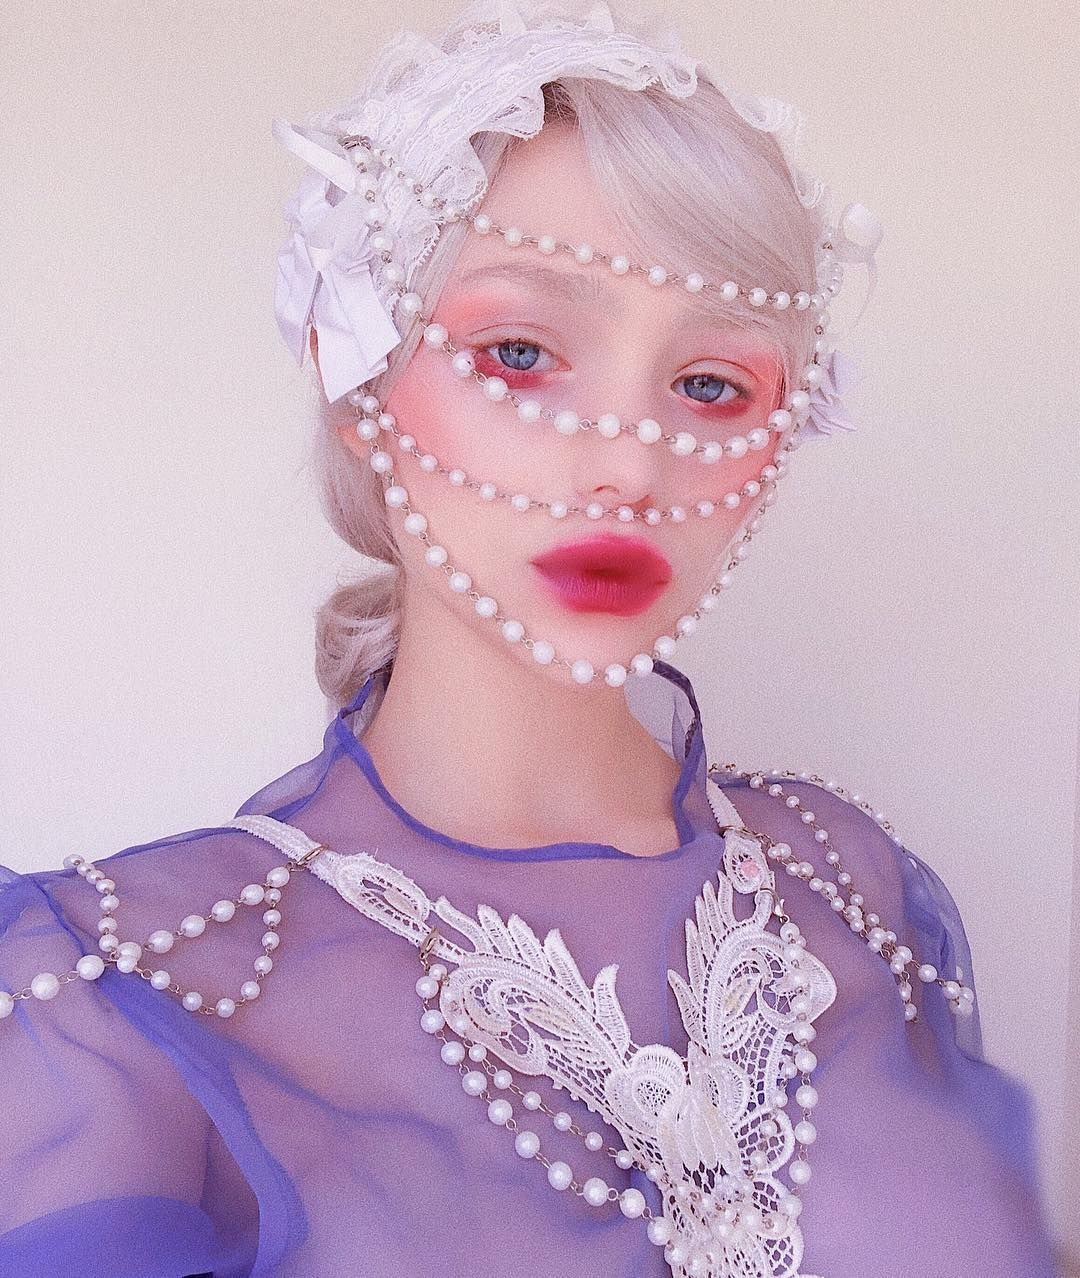 I tried to create my own met gala look. It's obviously